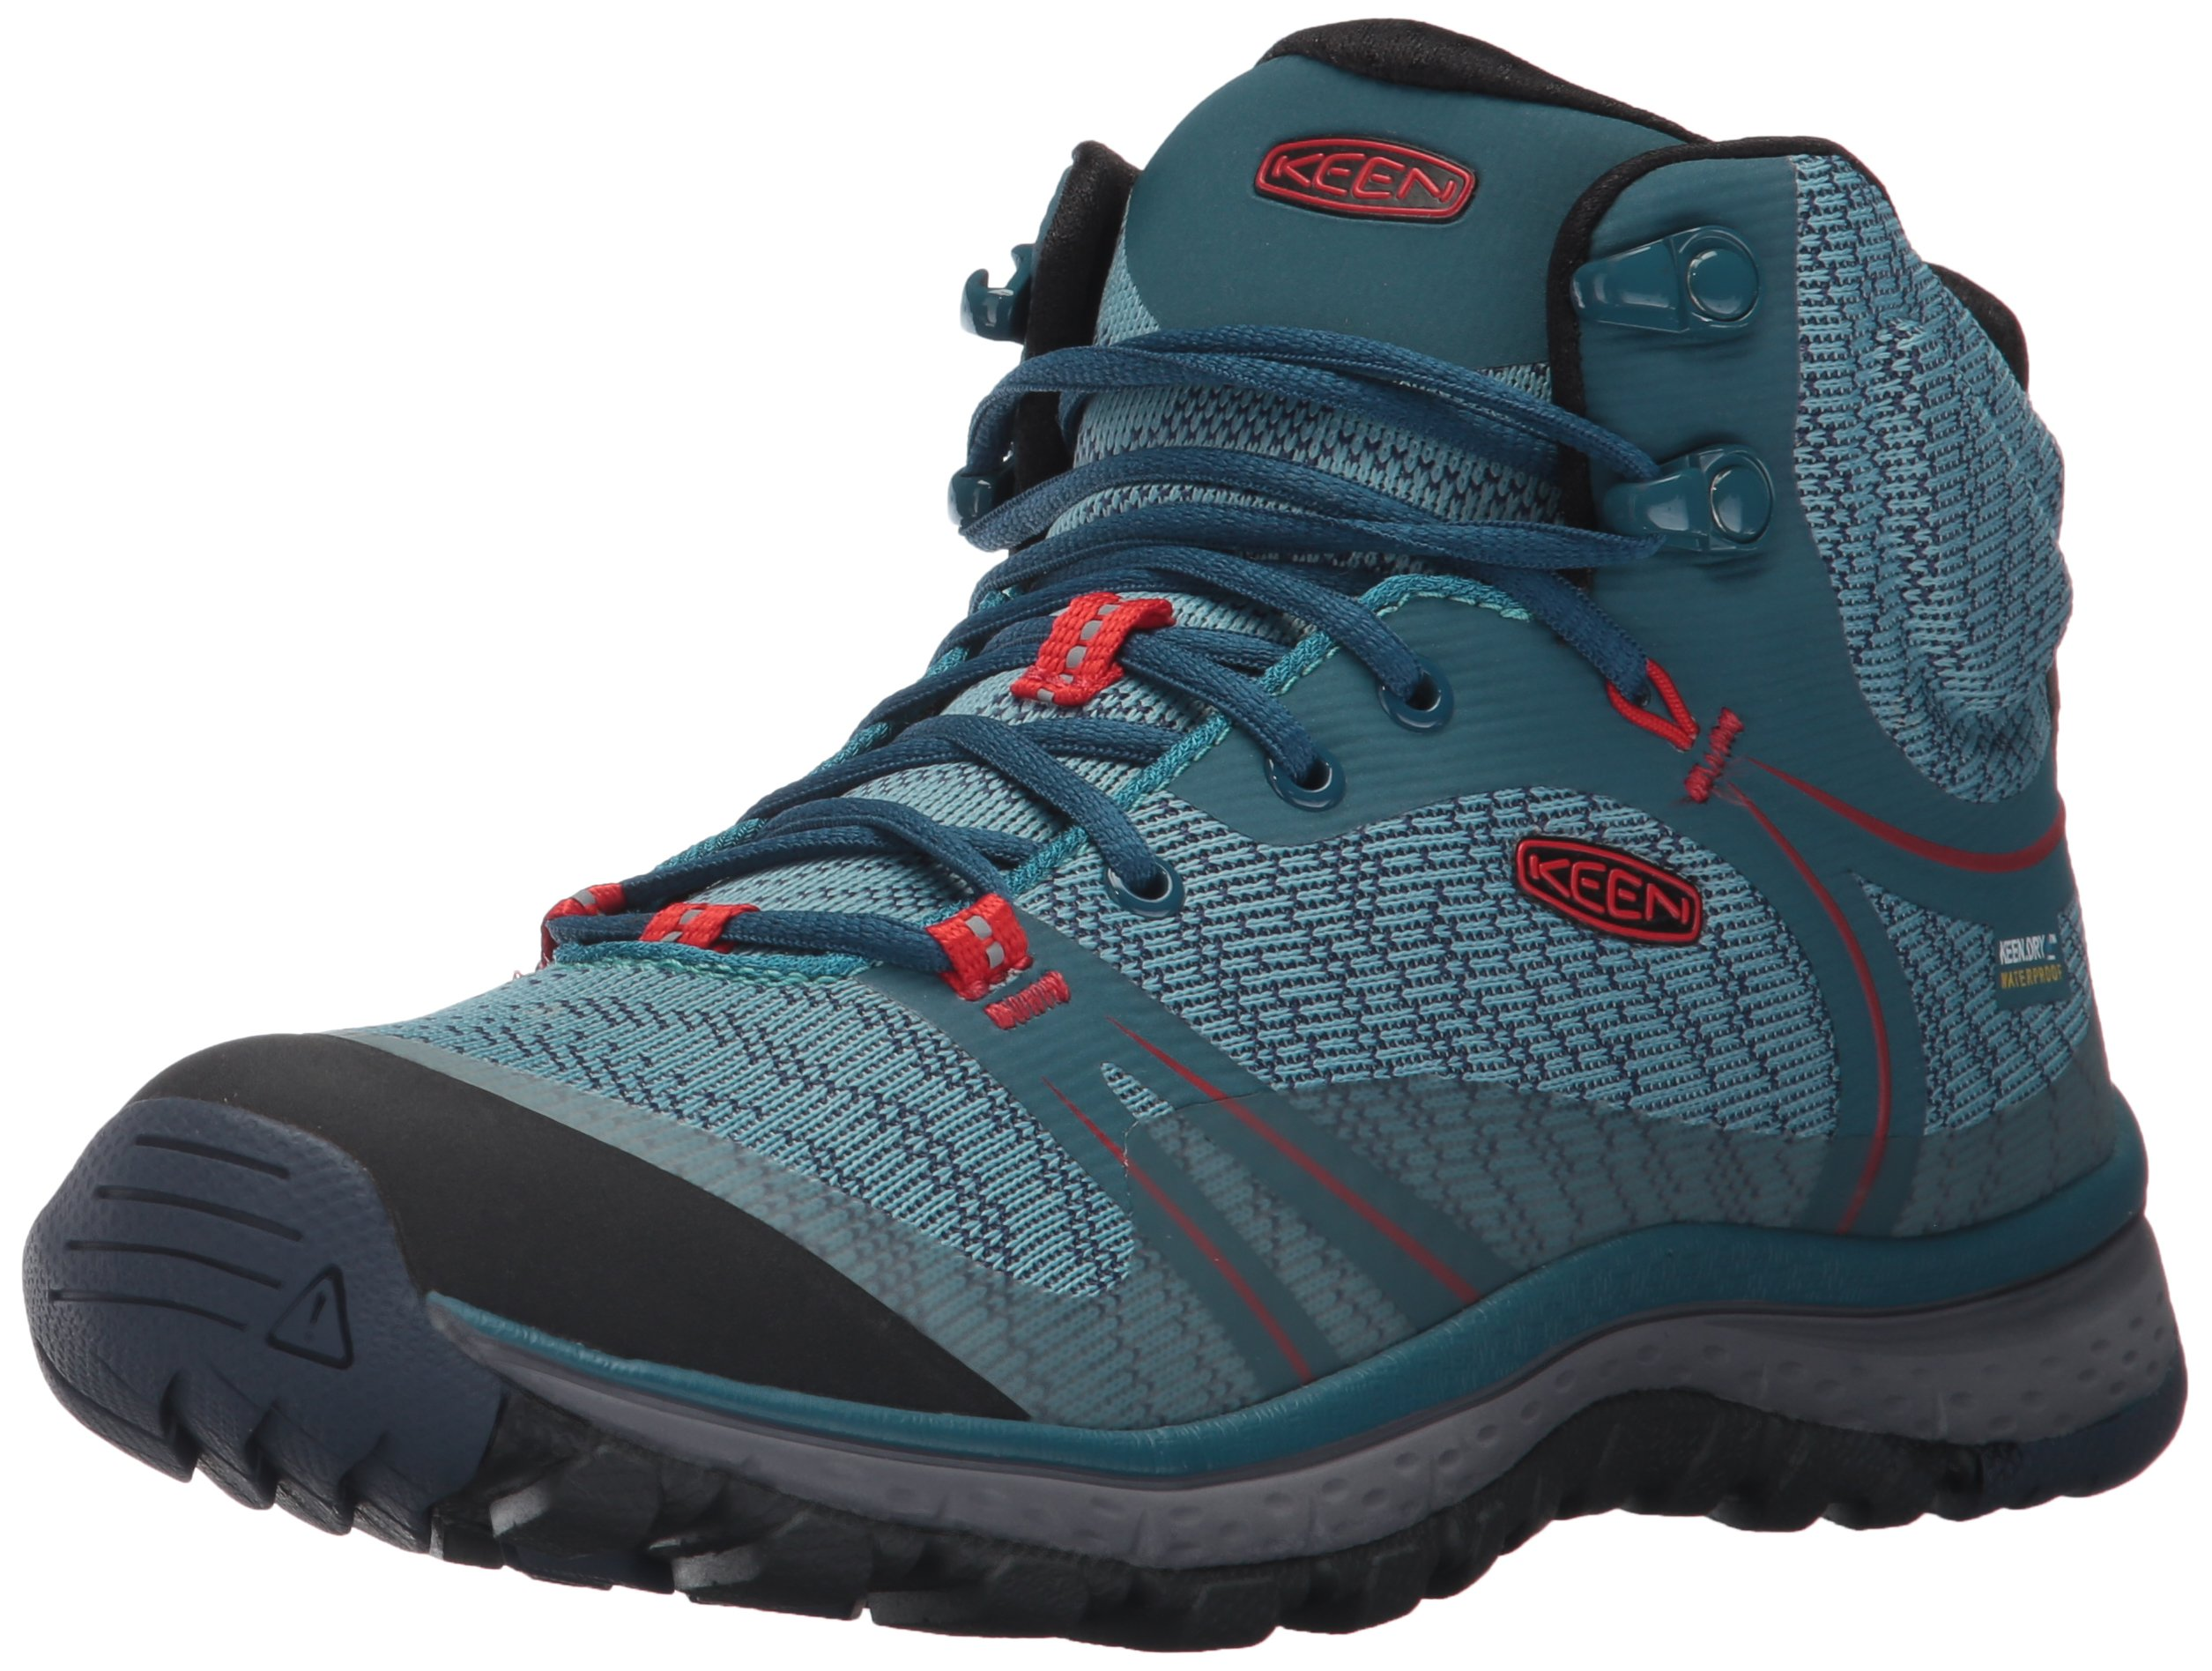 KEEN Women's Terradora Mid Wp-w Hiking Shoe, Blue Coral/Fiery Red, 9.5 M US